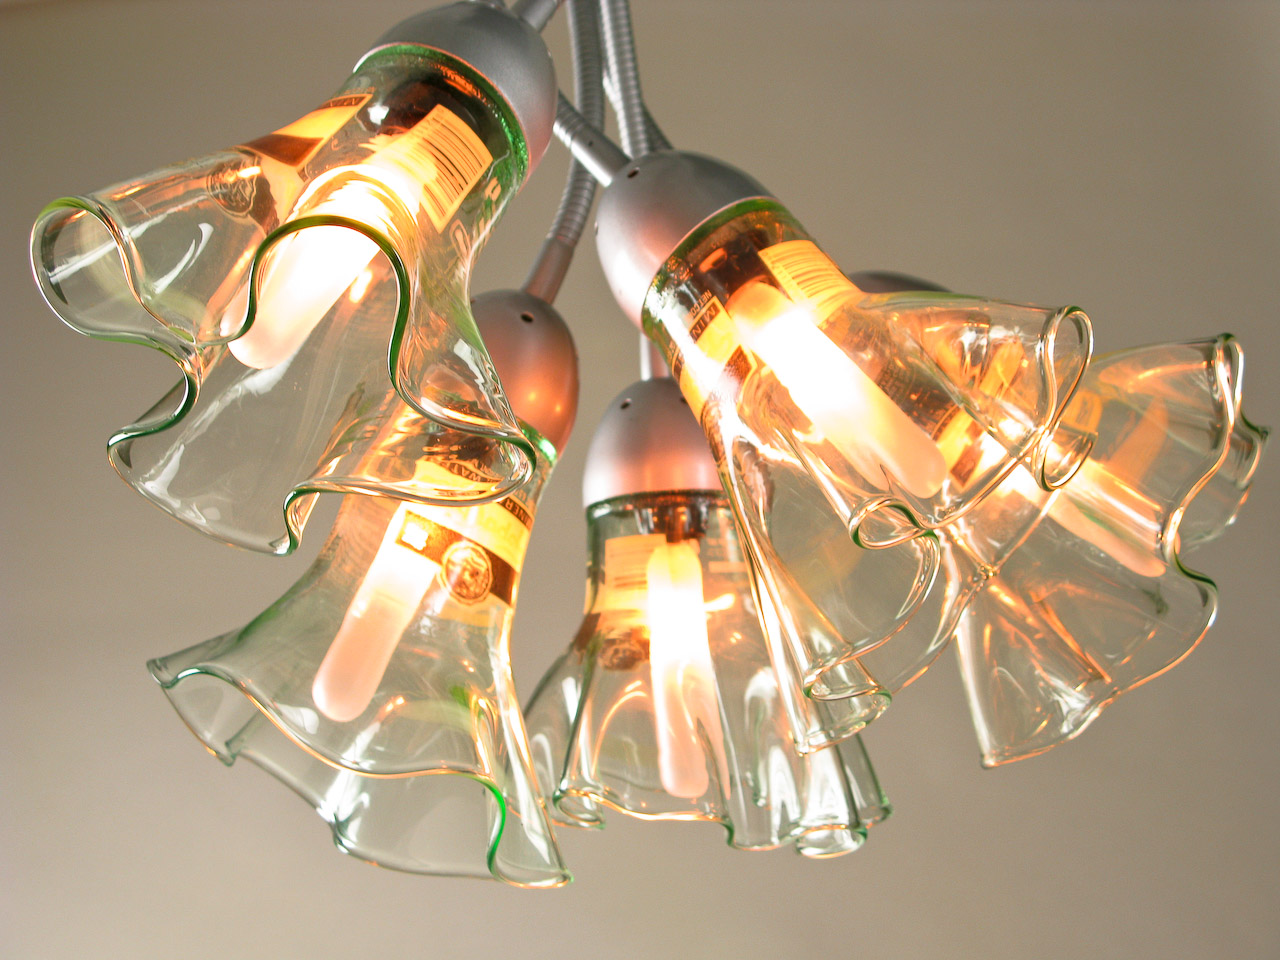 Recycled bottle blown glass chandelier home decor with an edge p - Glass bottle chandelier ...